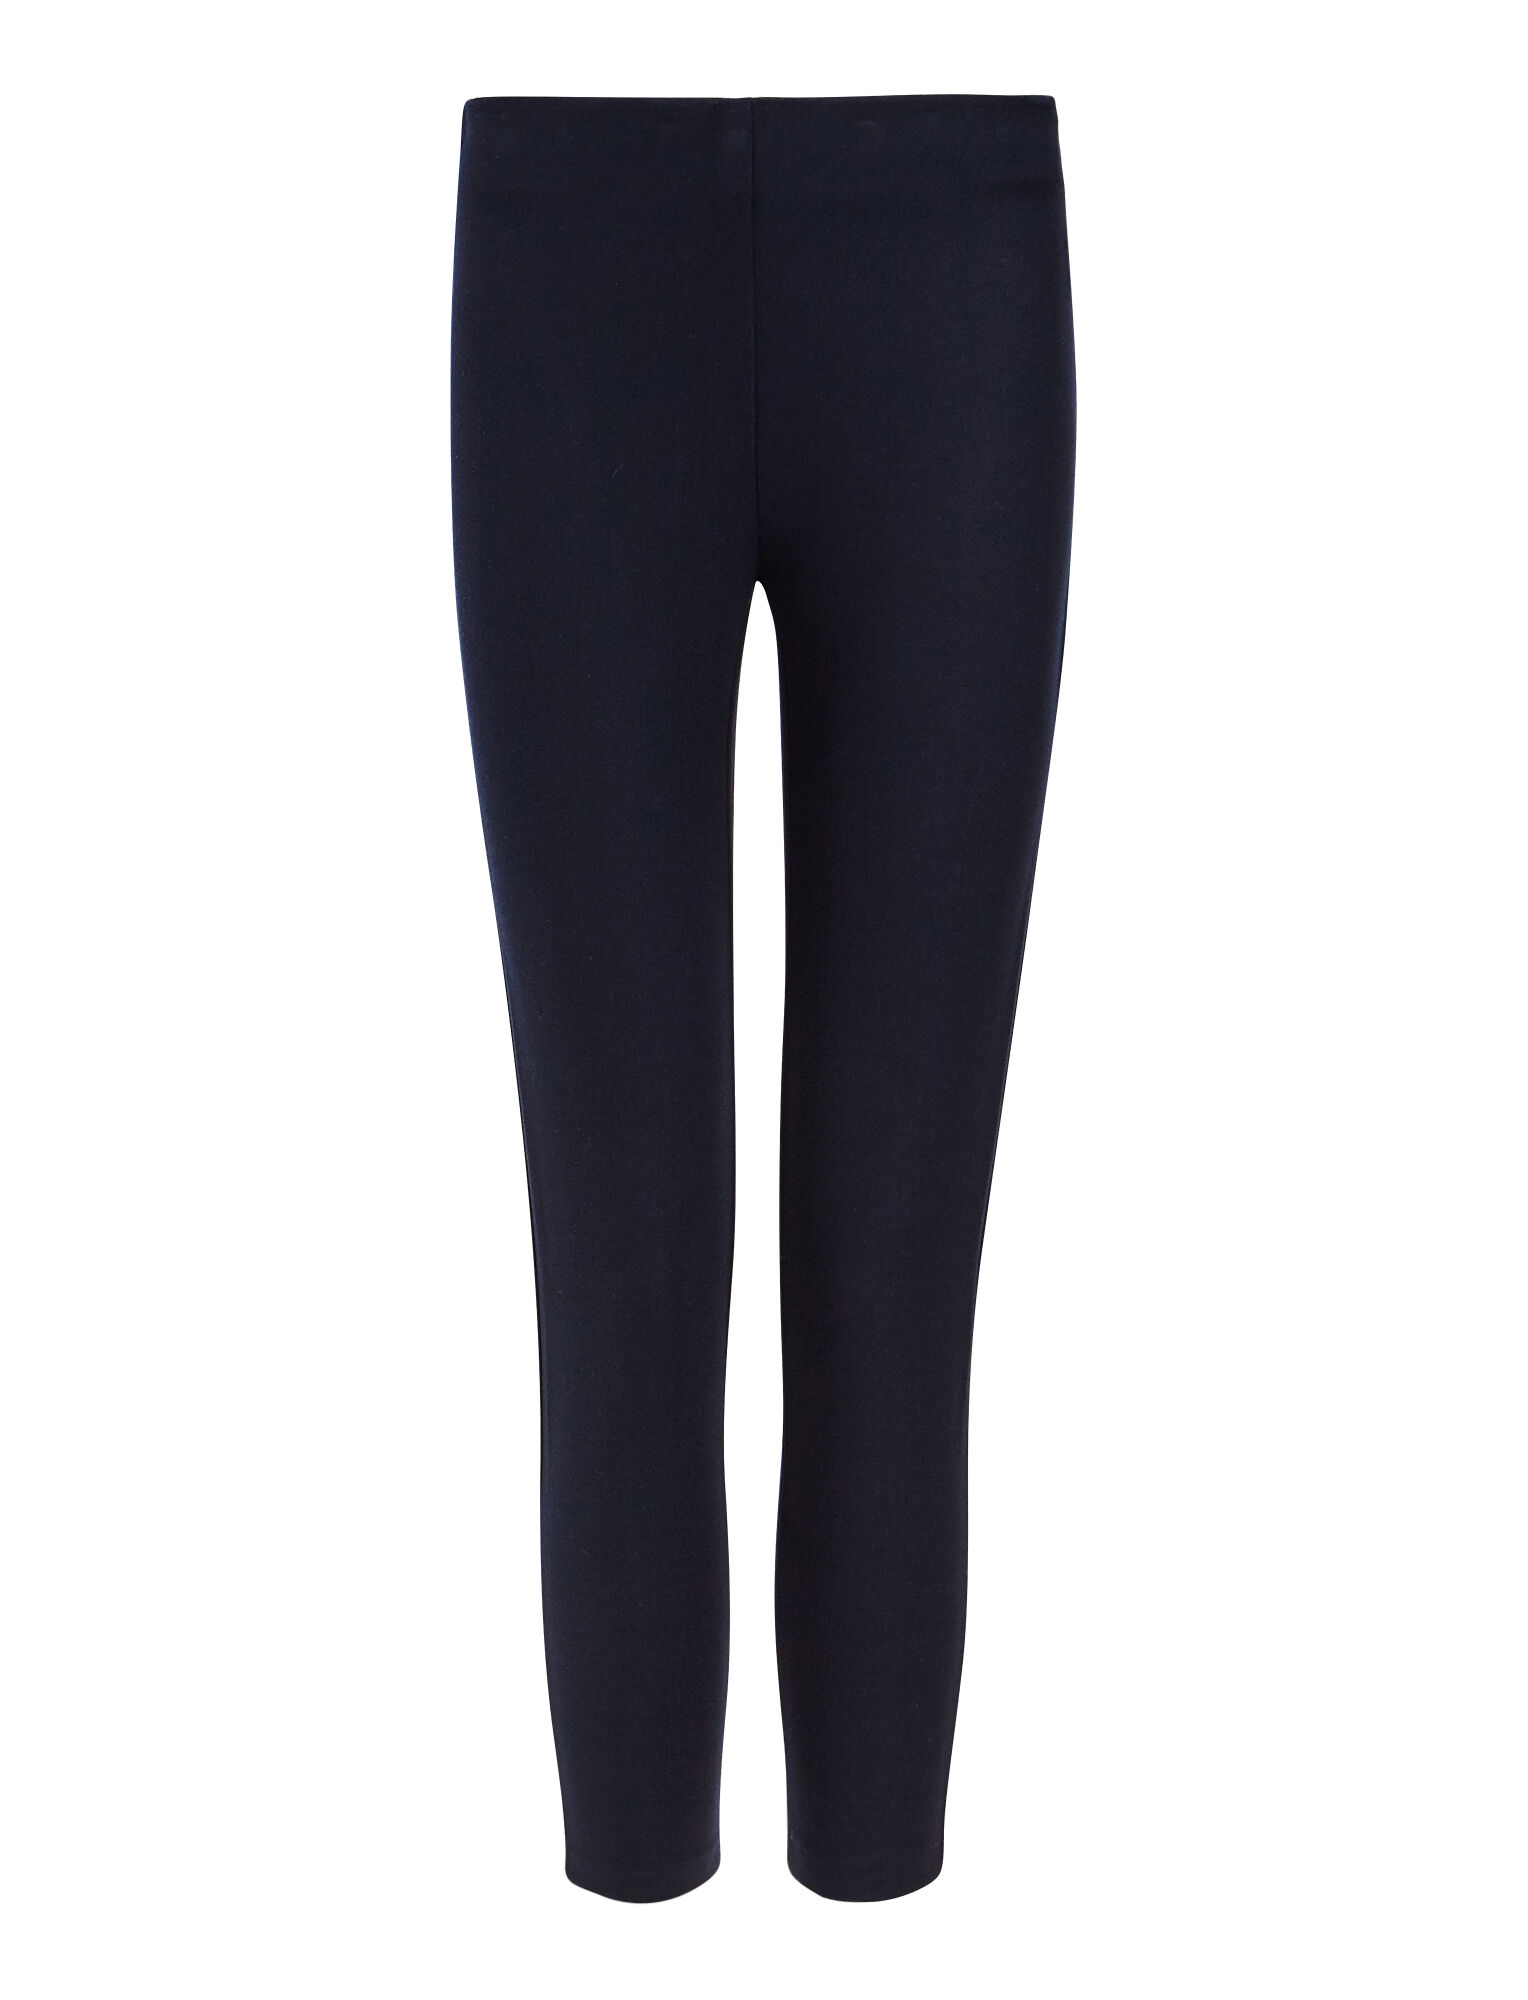 Joseph, Nitro Gabardine Stretch Trousers, in NAVY